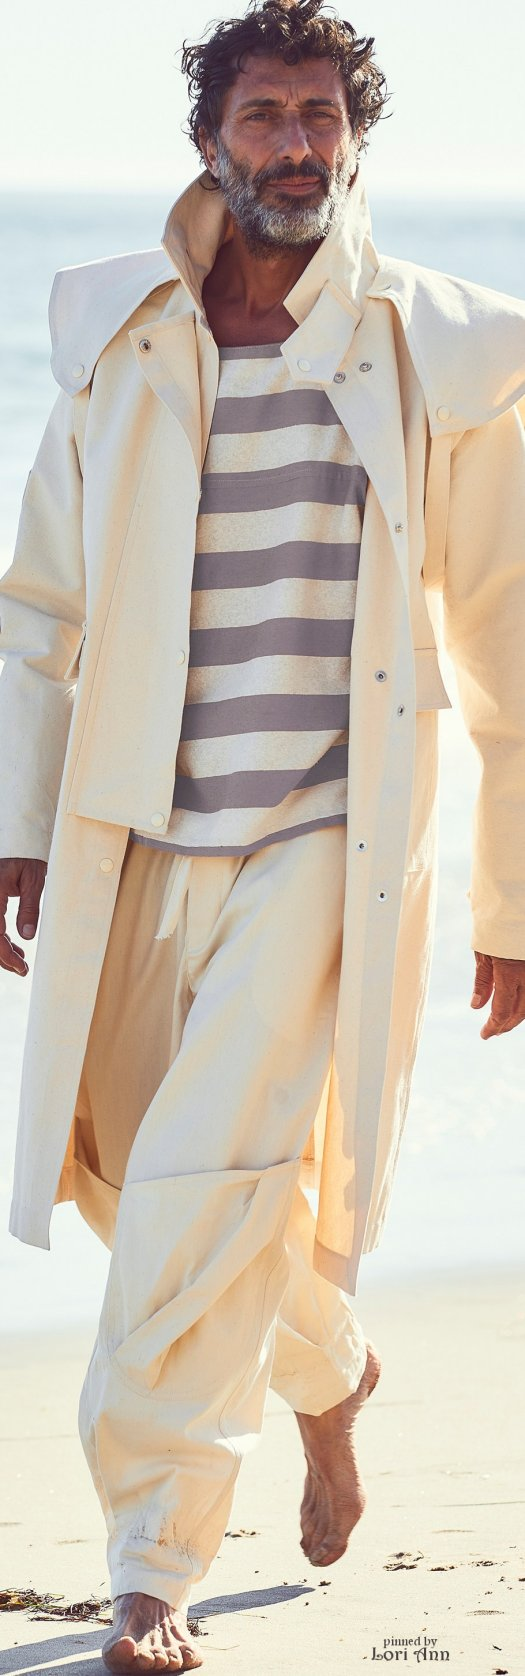 Electric Feathers Spring 2017 RTW Easy Methods To Succeed On Wearing Smart Casual Wardrobe For Men http://perfecthomebiz.online/category/man-fashion/